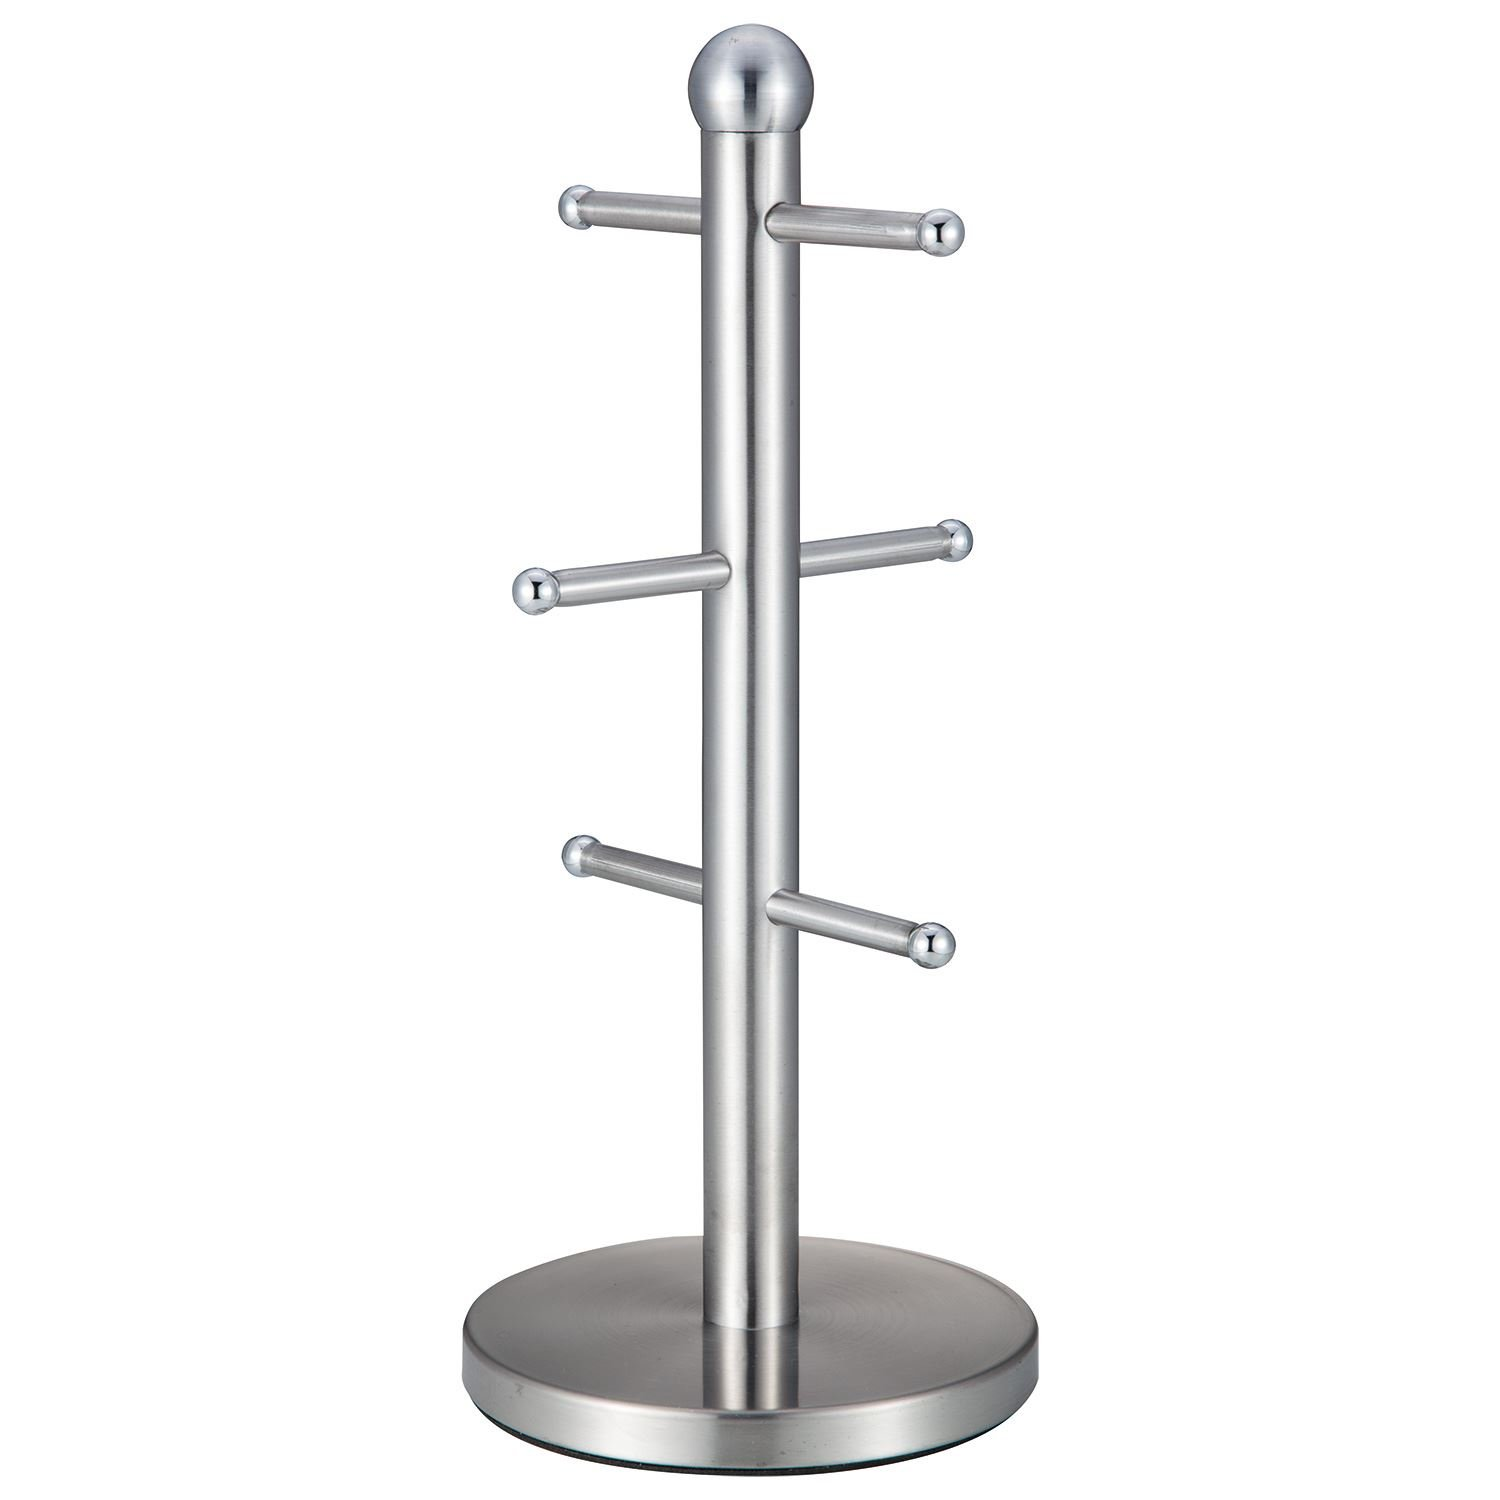 Black Stainless Steel 6 Cup Mug Tree Stand Holder Hanging Cup Kitchen Storage Rack